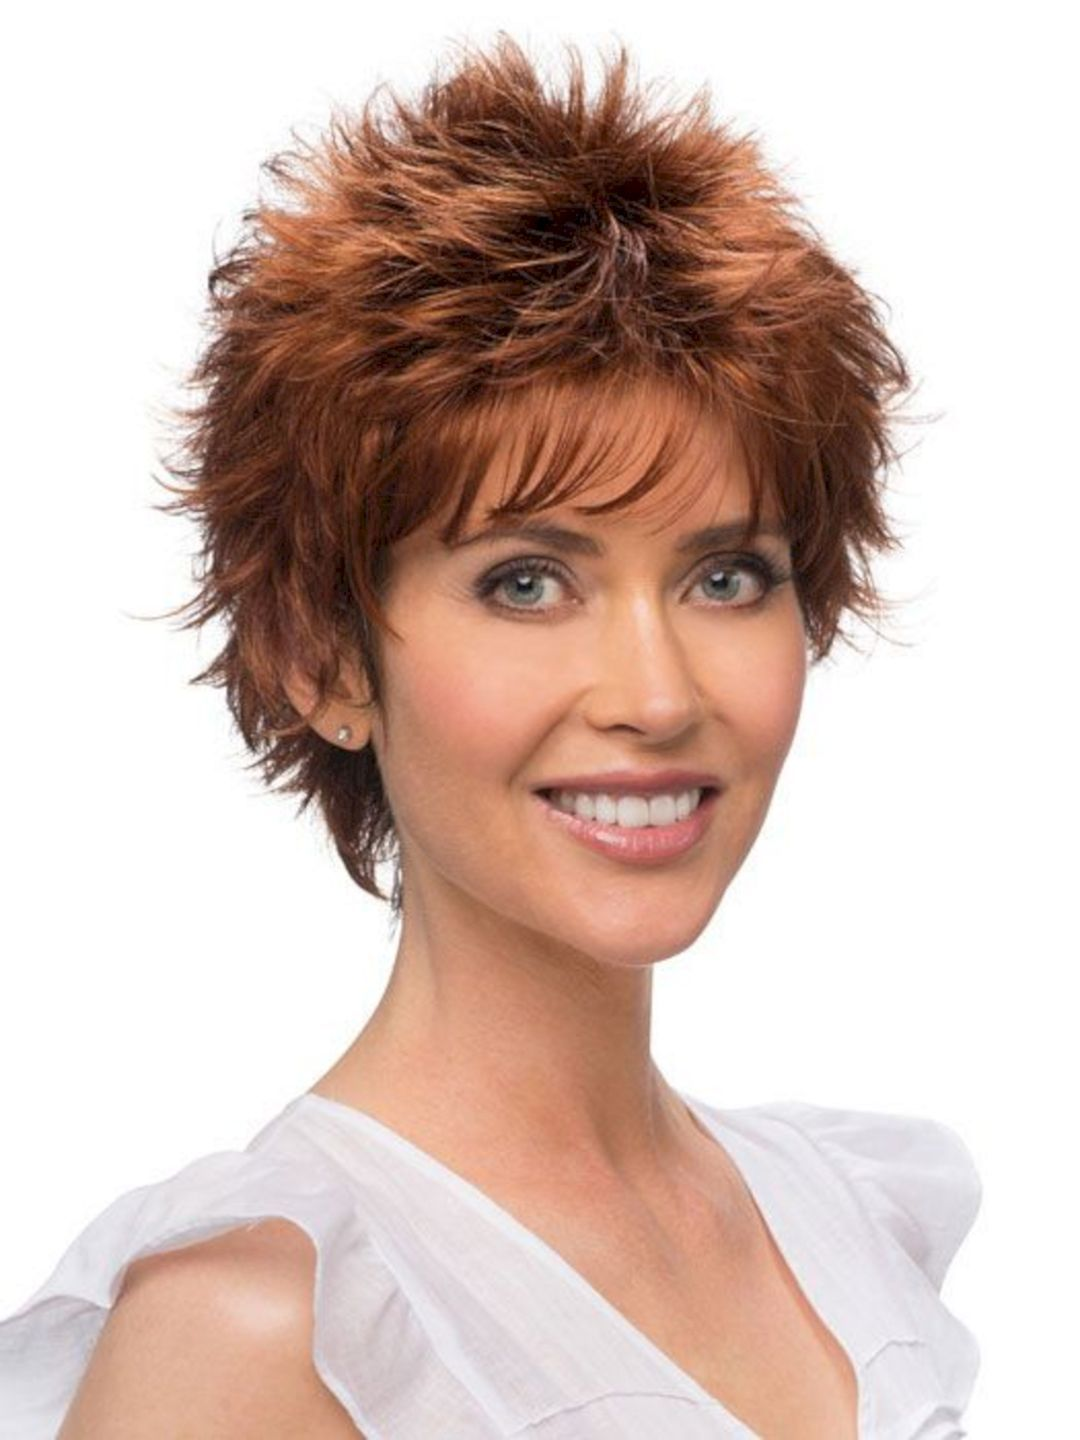 beautiful short hairstyle for chic women short hairstyle